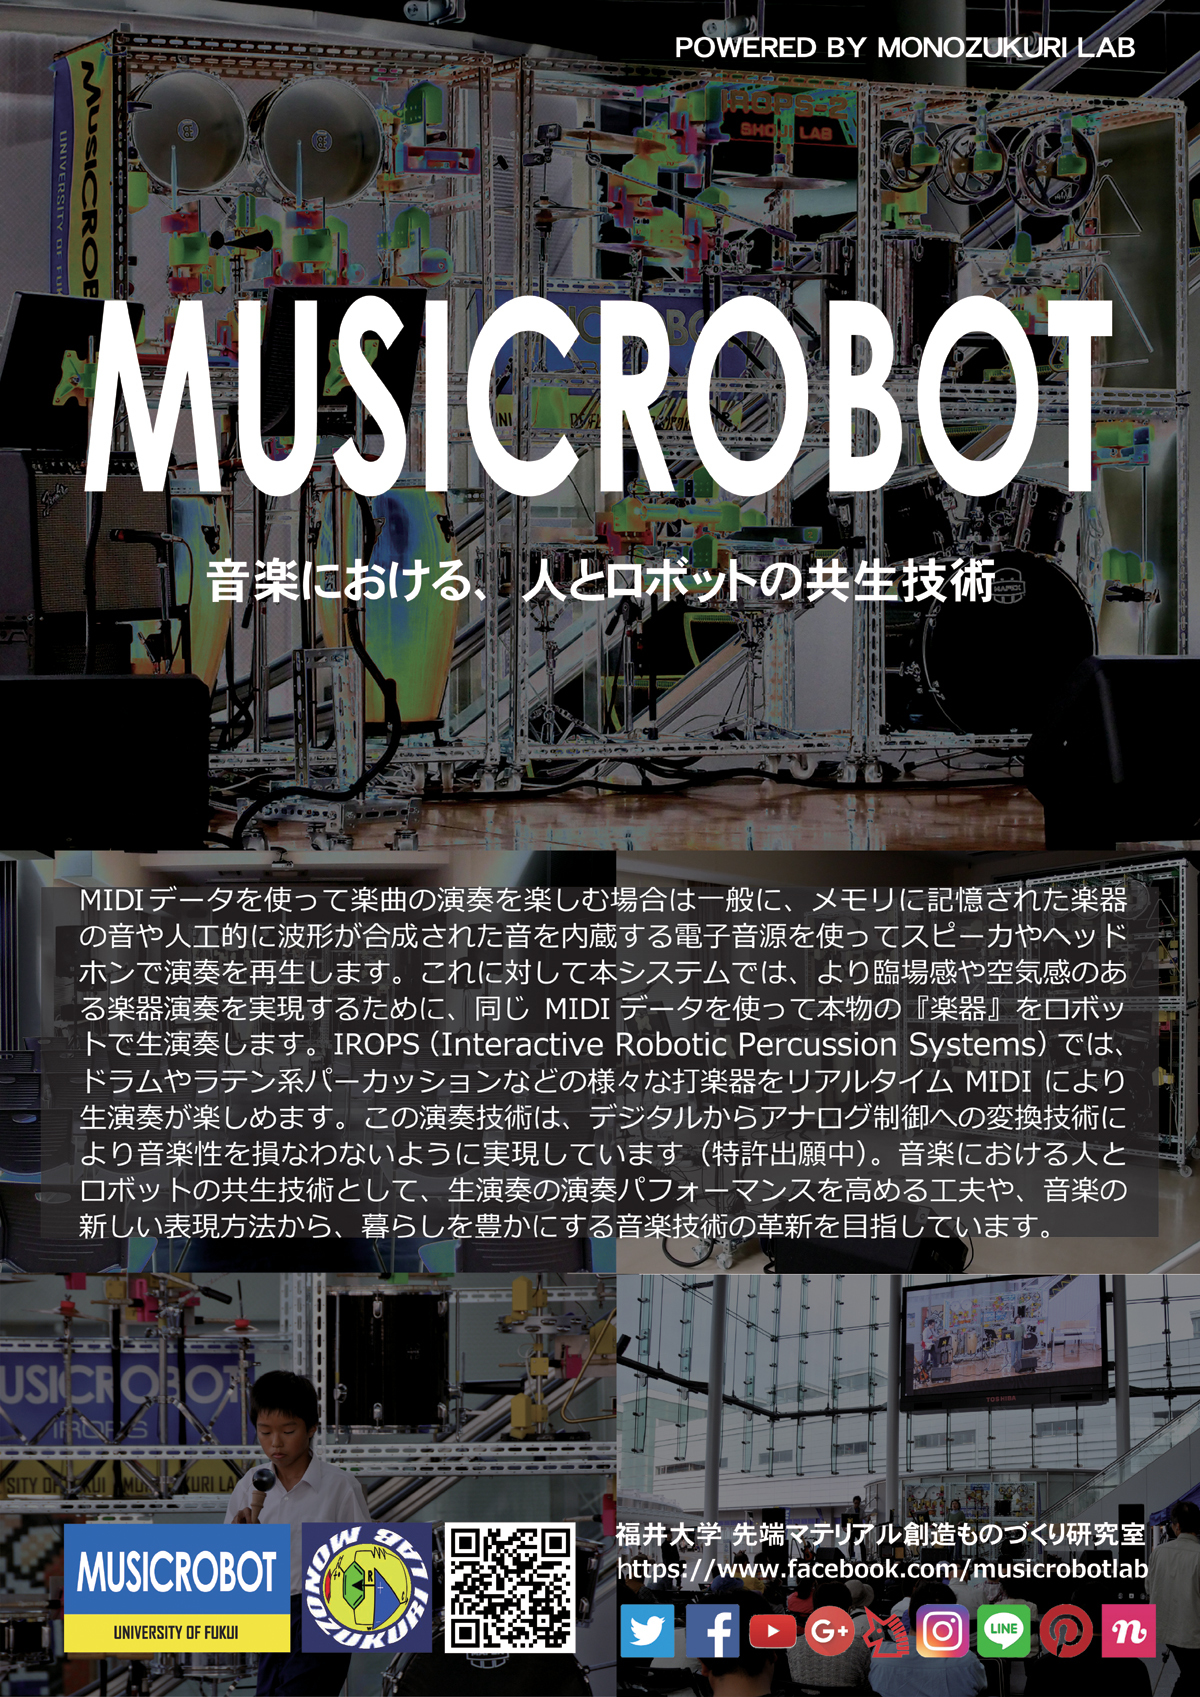 musicrobot_pan_10-outline_x1200.jpg